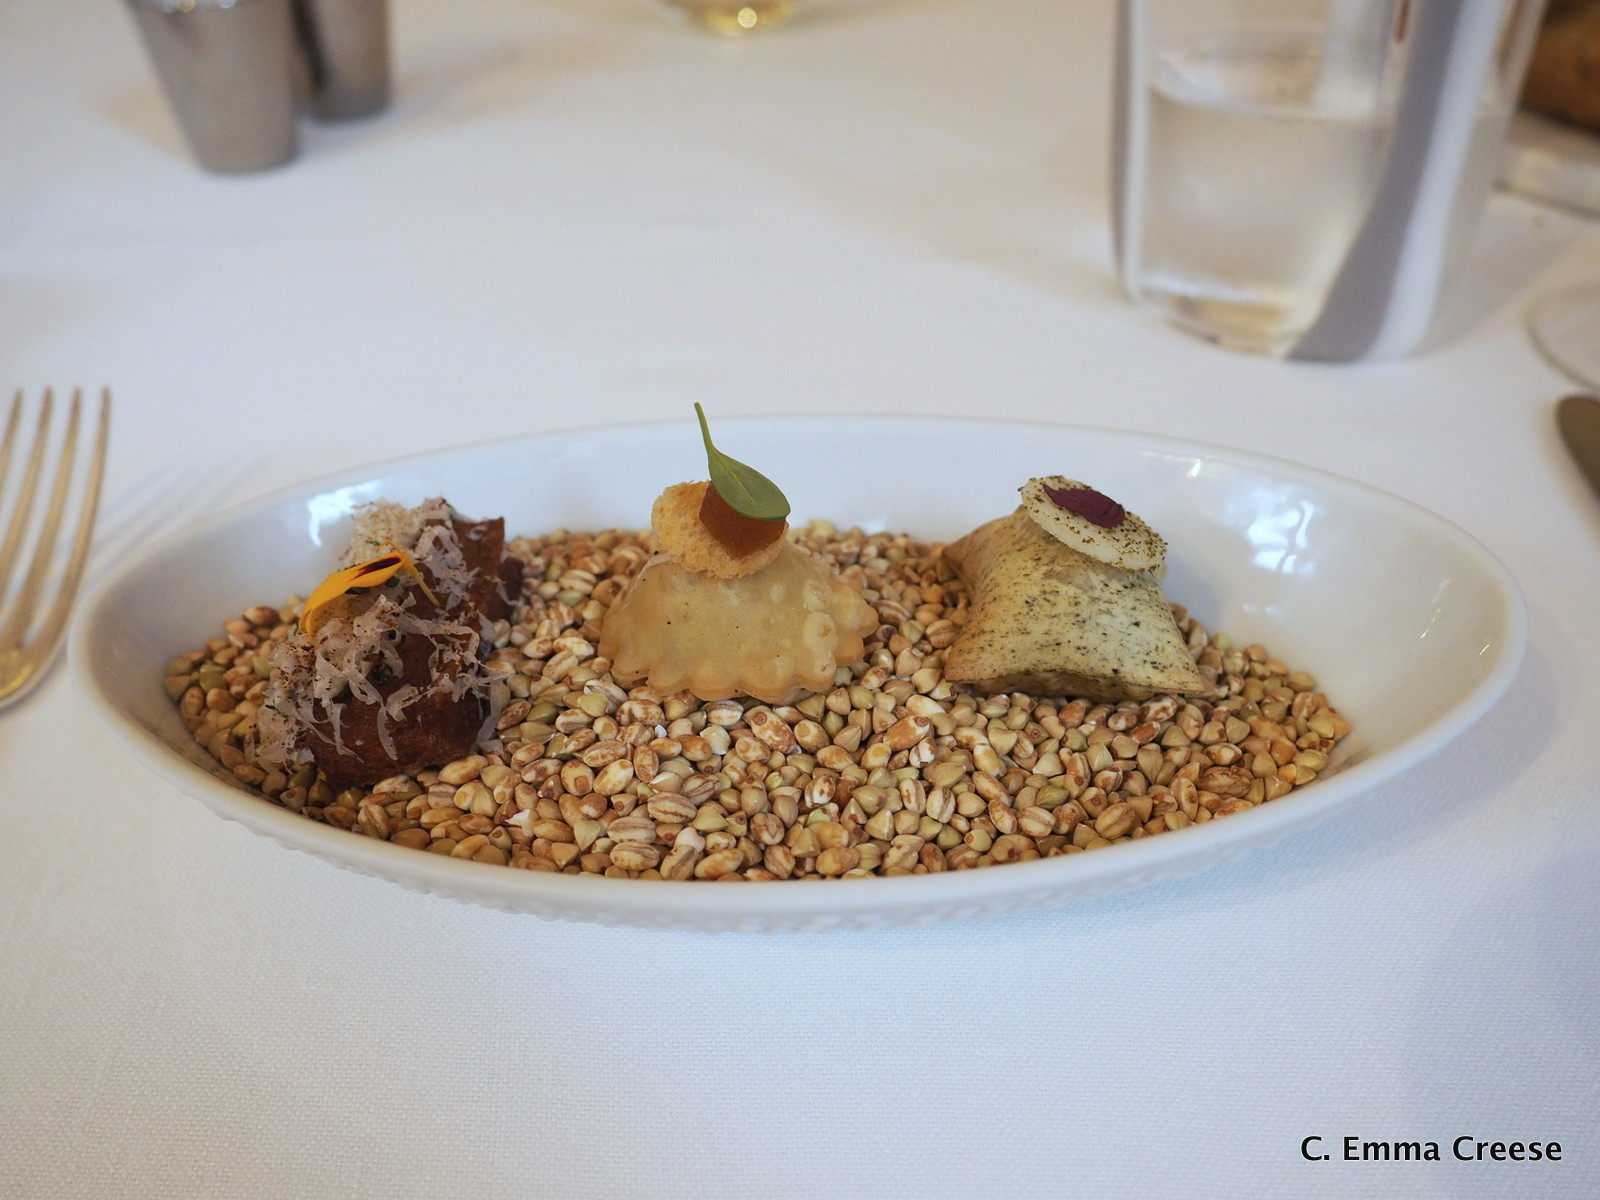 Hélène Darroze at The Connaught Hotel Mayfair Michelin Starred Adventures of a London Kiwi